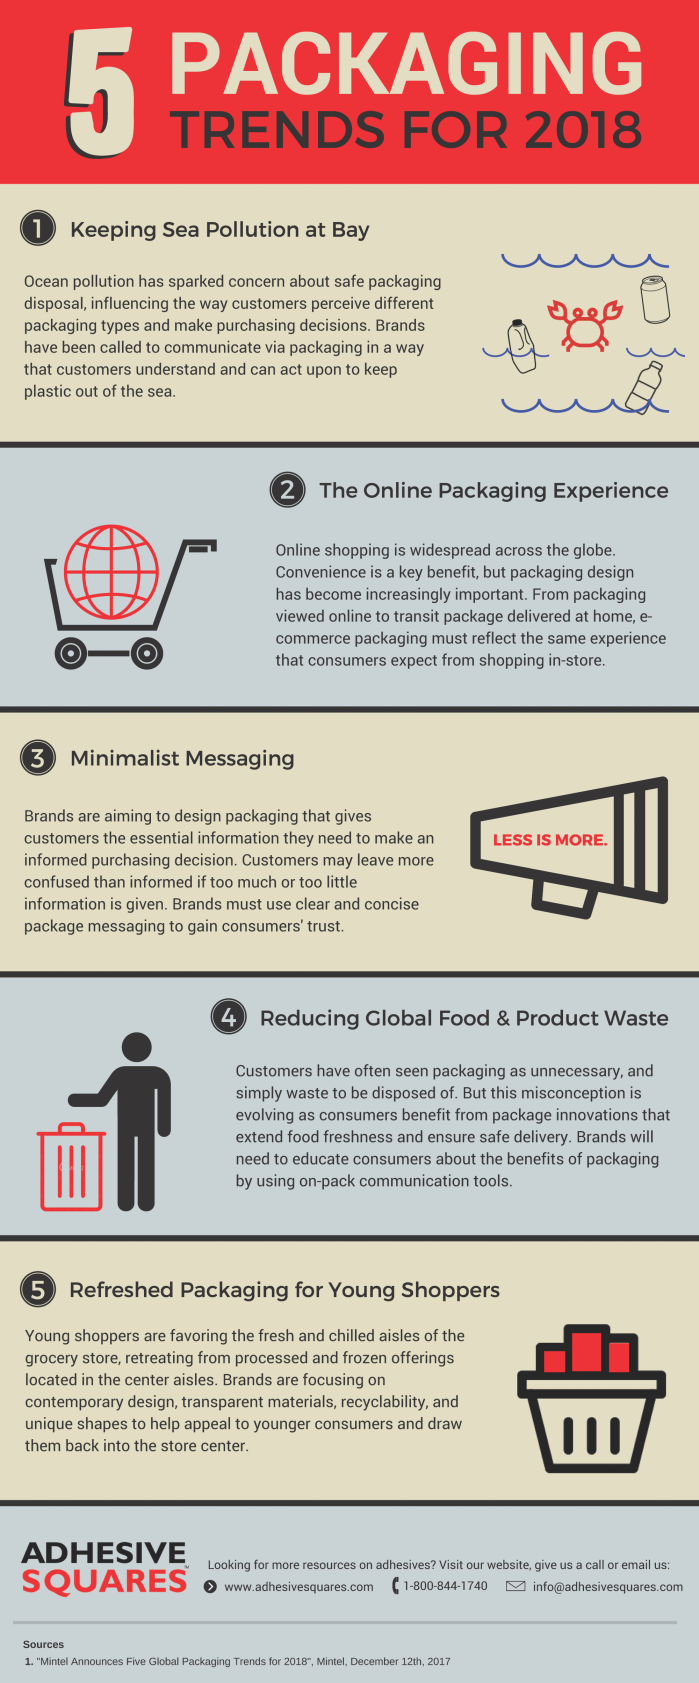 5 Packaging Trends for 2018